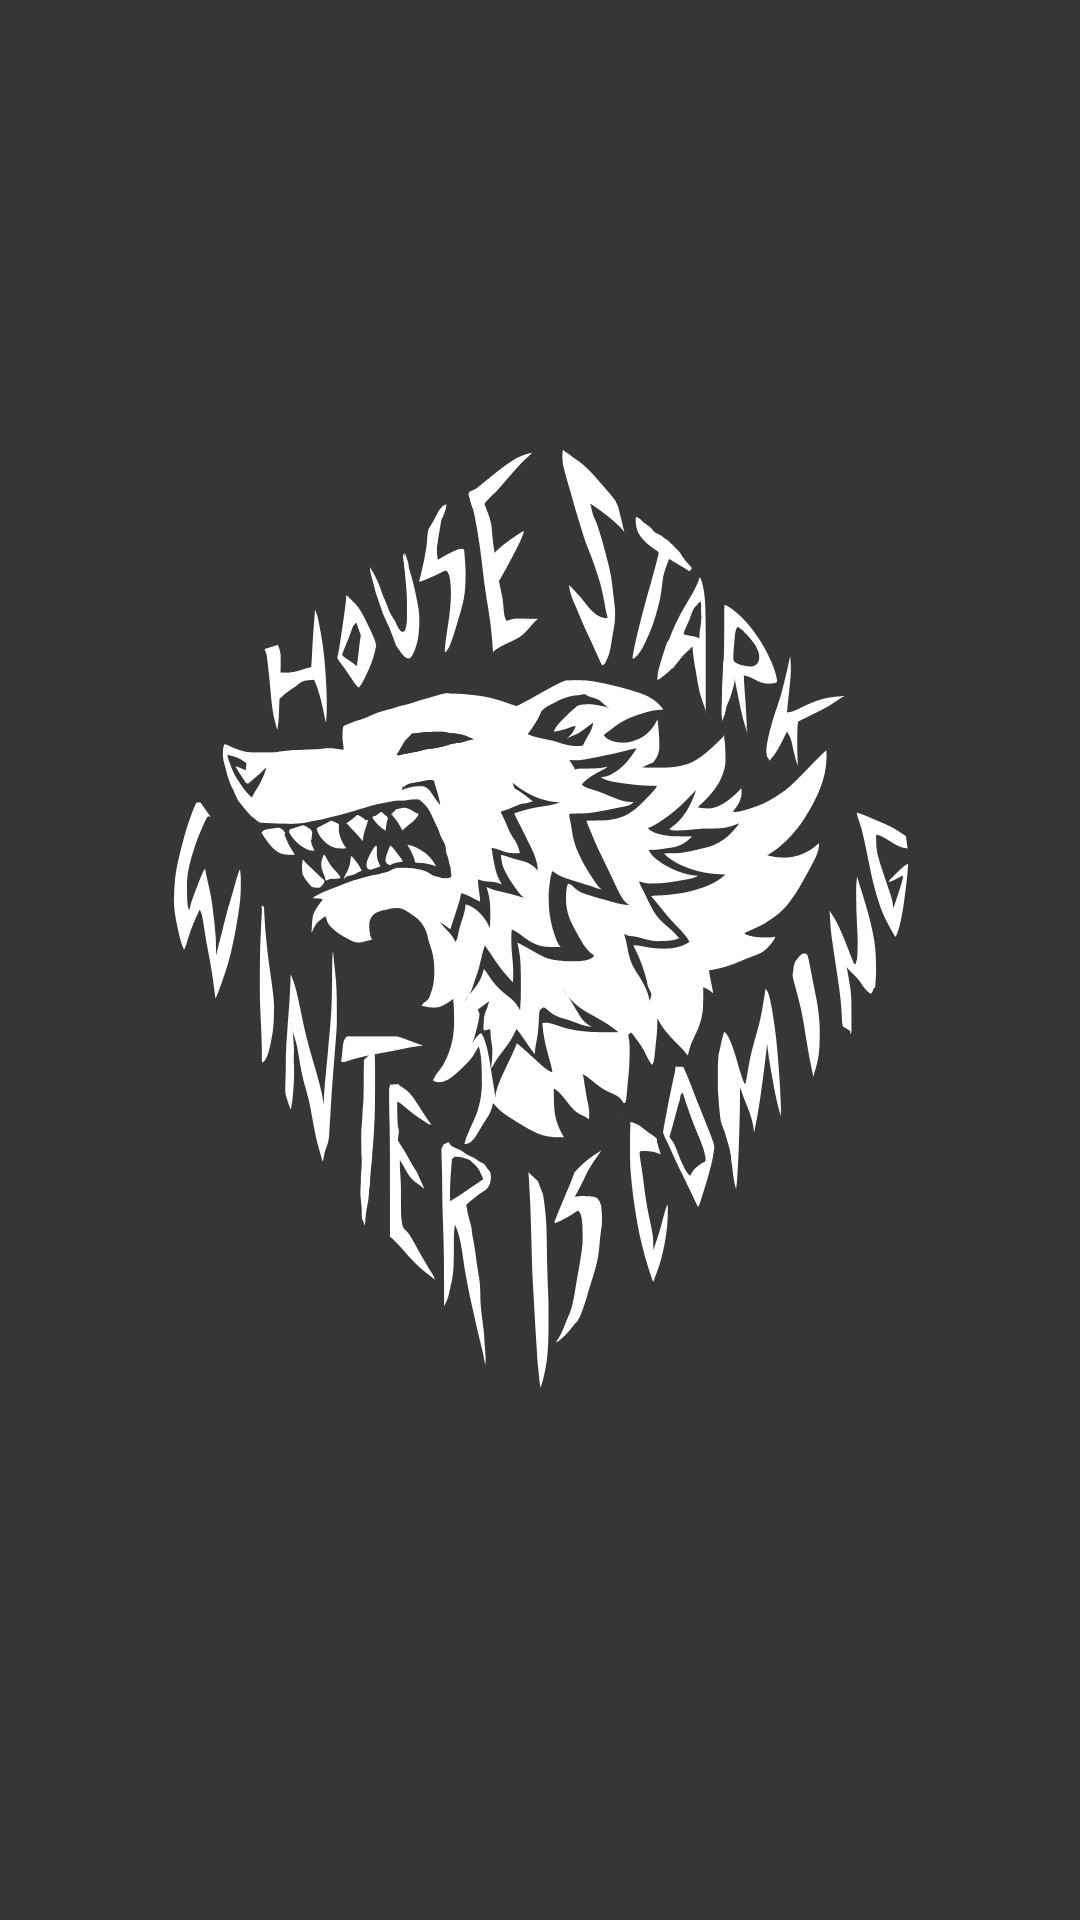 1080x1920 Funmozar House Stark Iphone Wallpapers House Stark 3077671 Hd Wallpaper Backgrounds Download